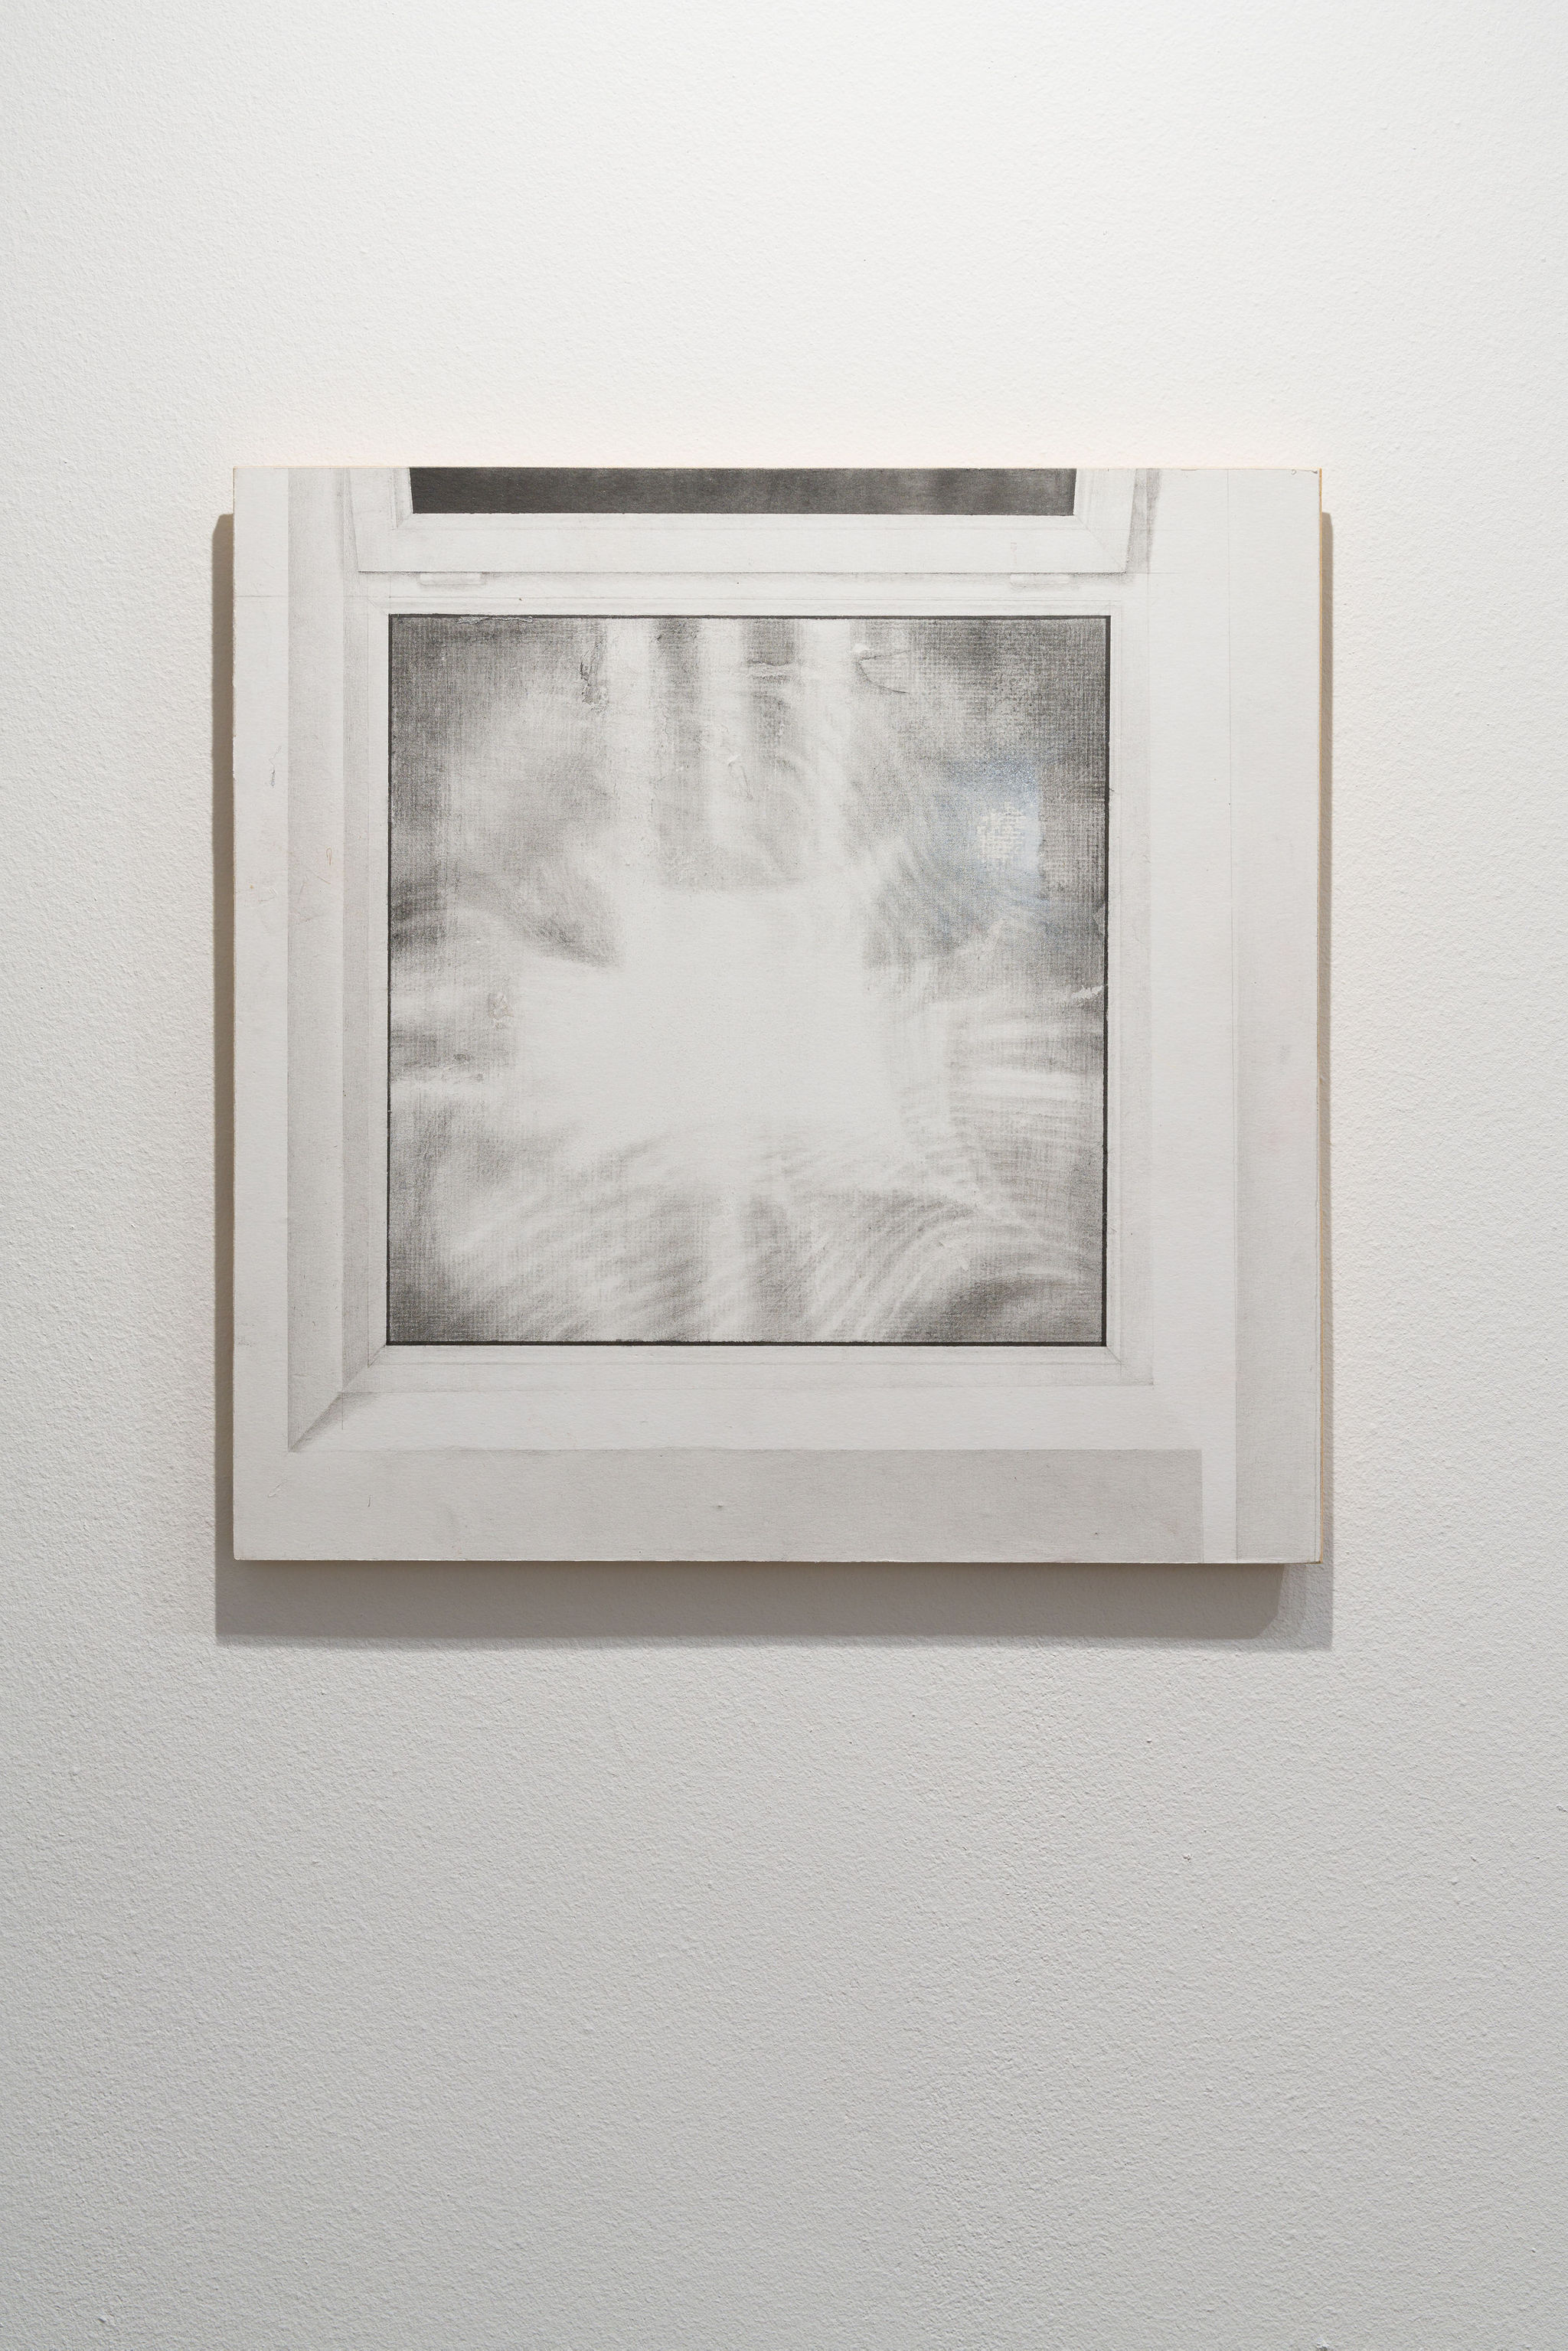 Untitled 2020, Graphite on paper mounted on wood